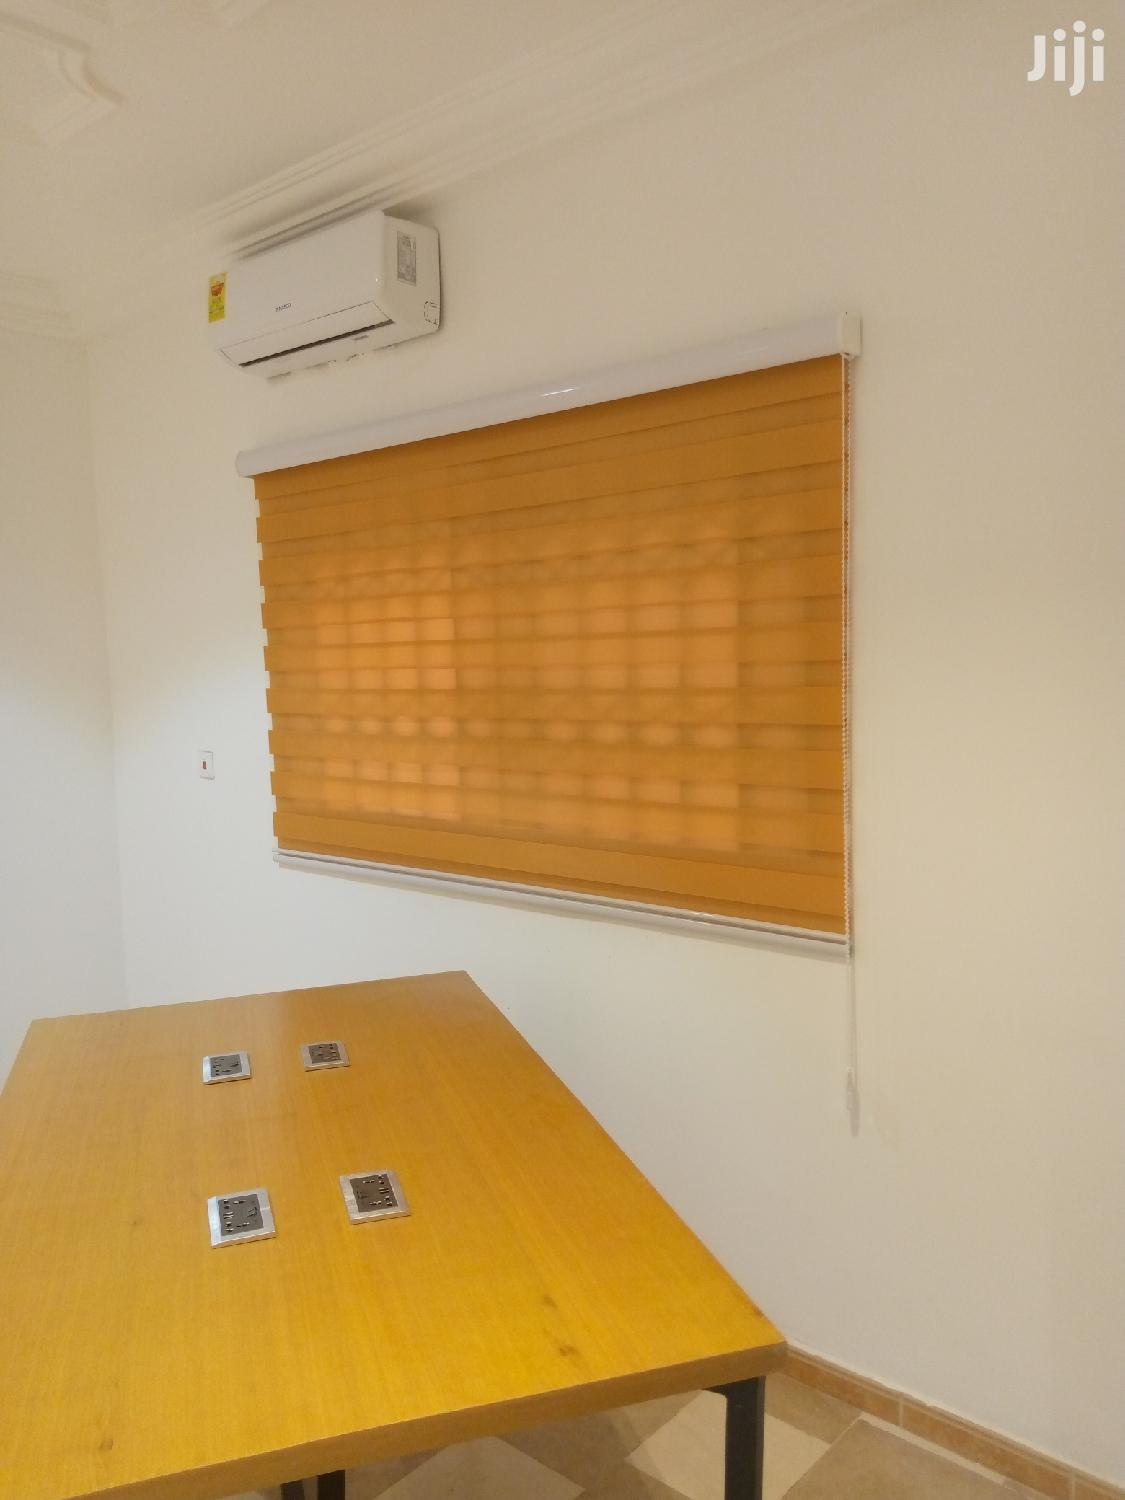 Classy Executive Zebra Blinds Installation Free | Building & Trades Services for sale in Accra Metropolitan, Greater Accra, Ghana